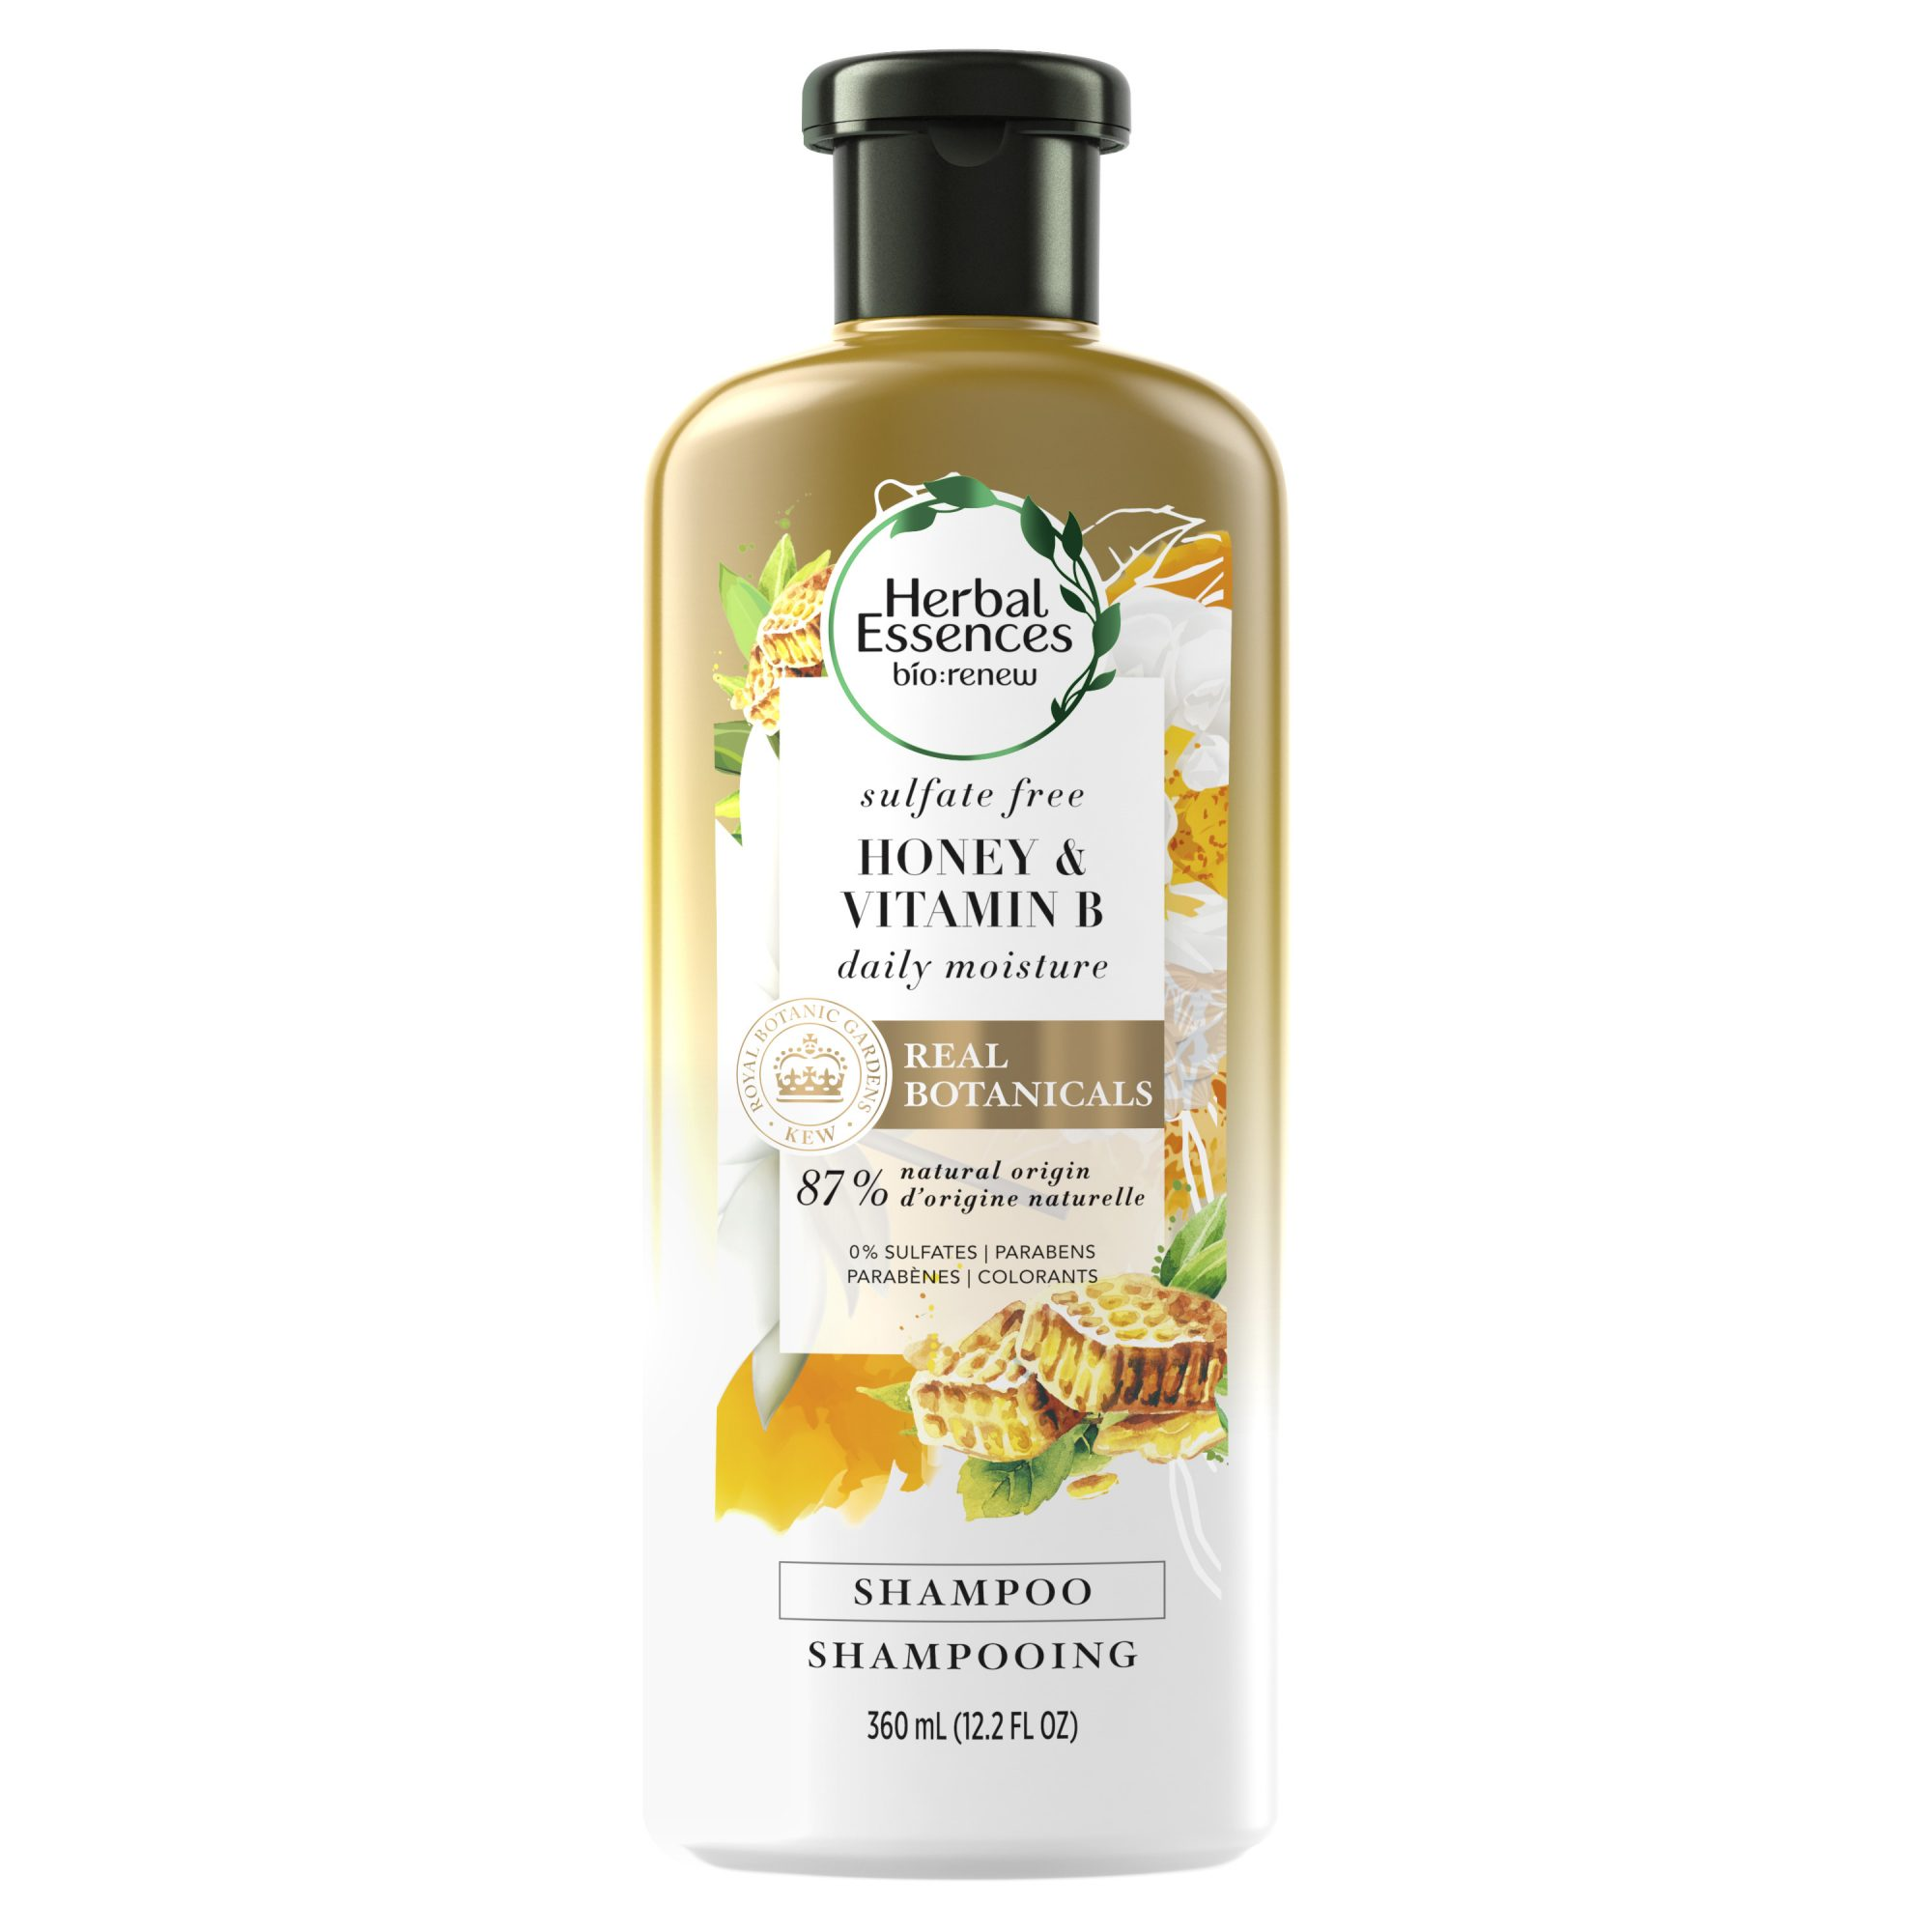 Herbal Essences Honey & Vitamin B Sulfate Free Shampoo and Conditioner